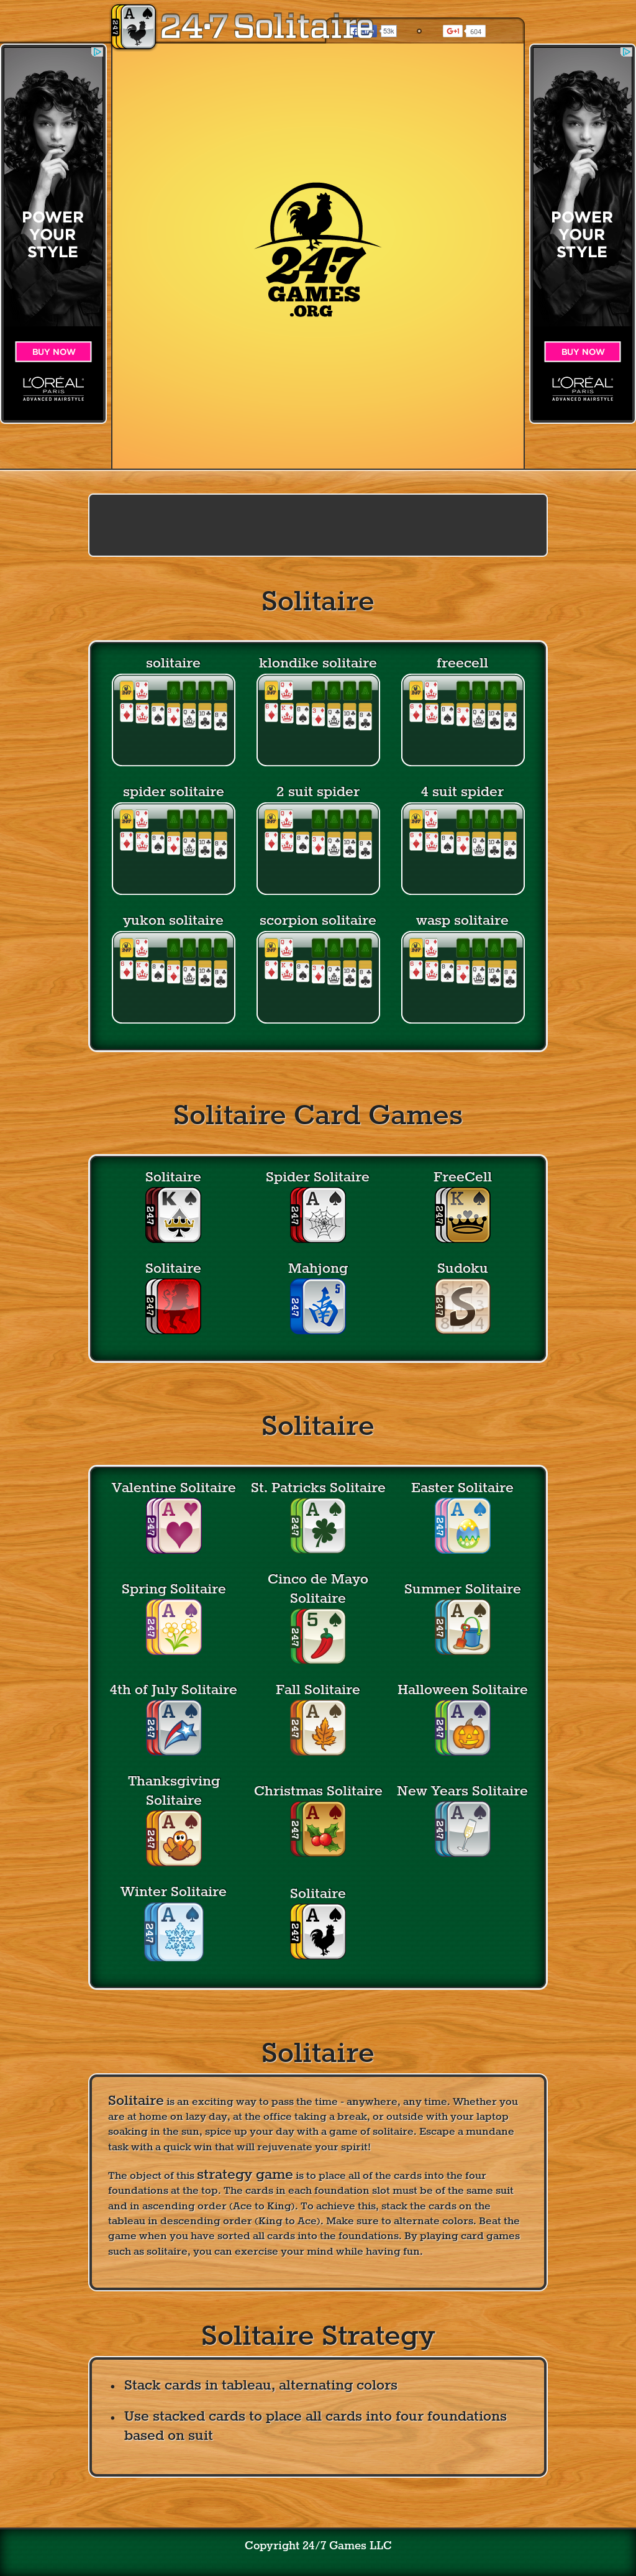 Christmas Solitaire 247.247solitaire Competitors Revenue And Employees Owler